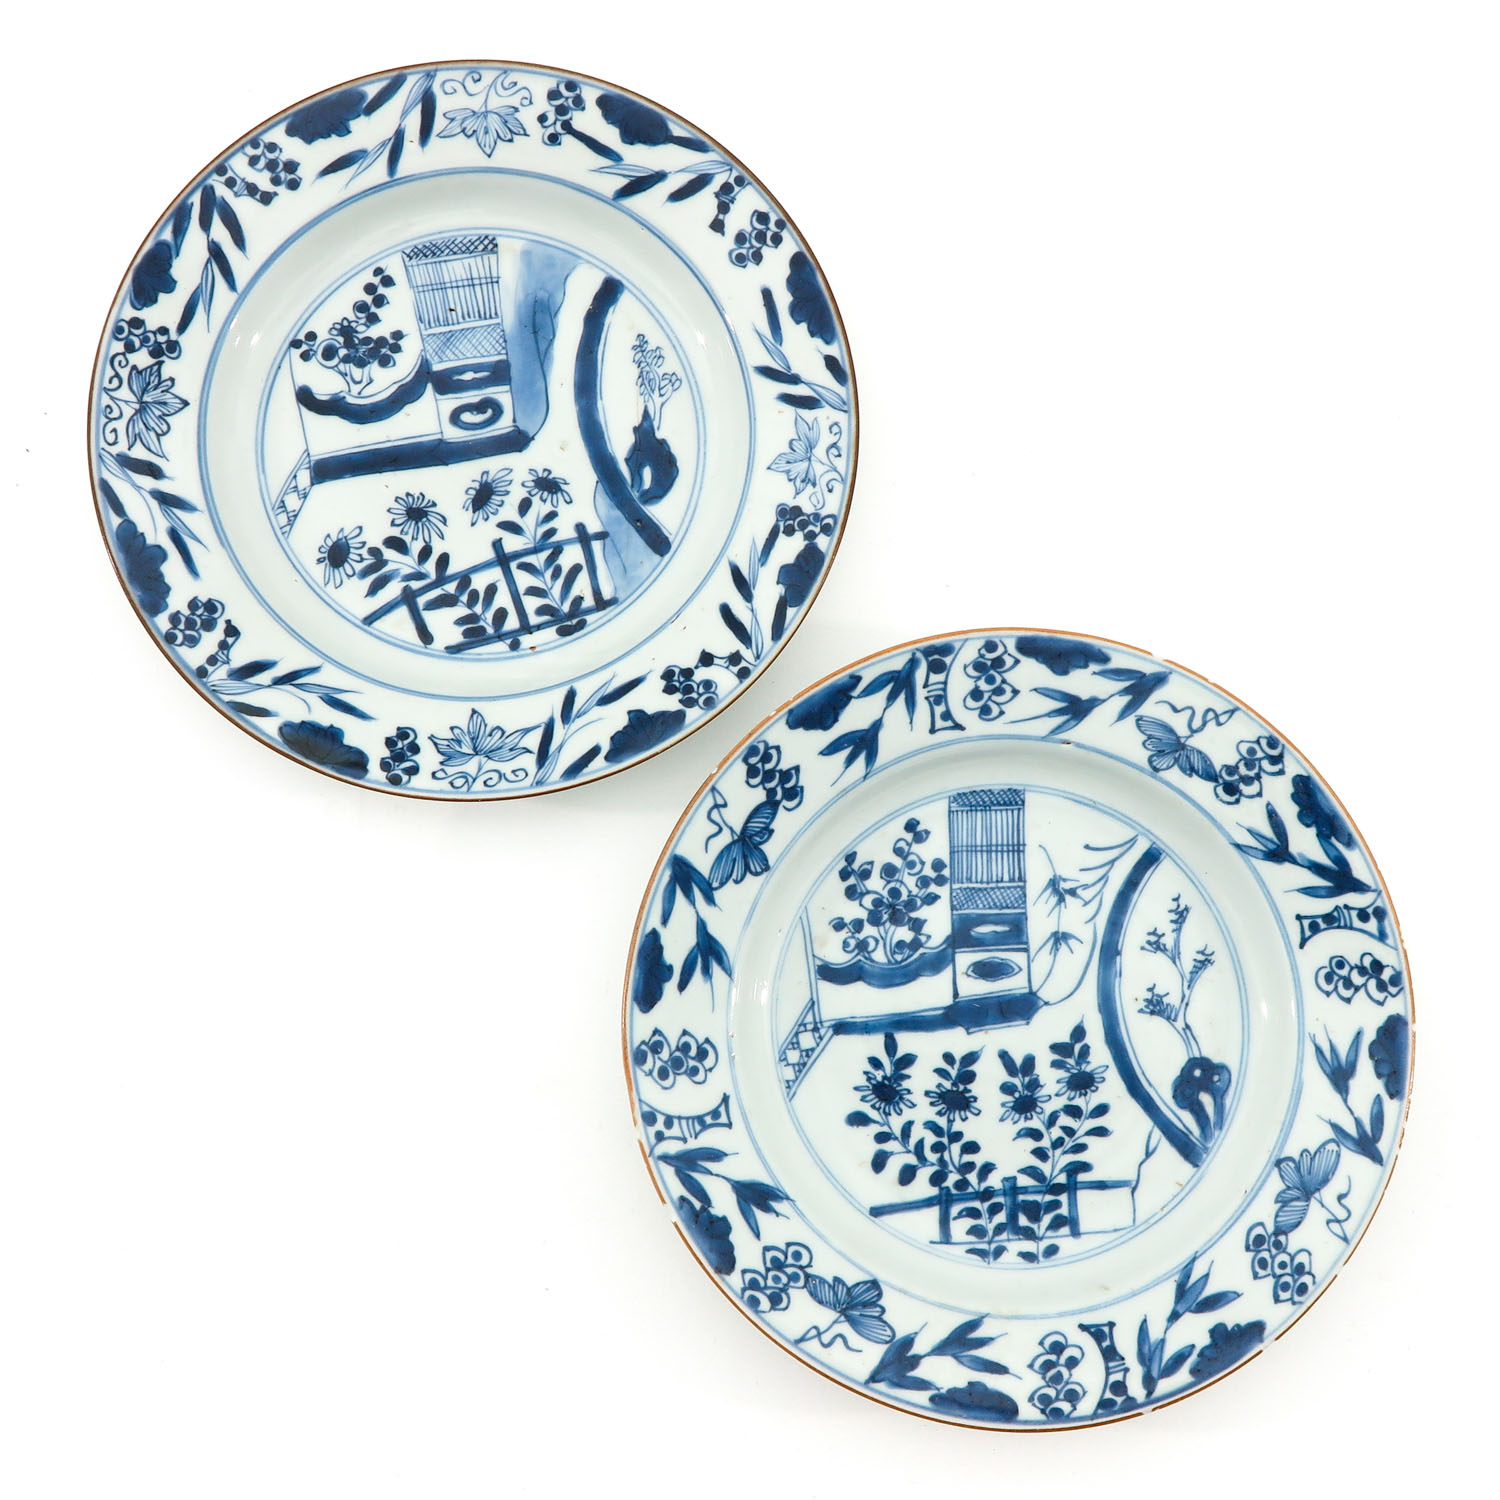 A Series of 6 Blue and White Plates - Image 5 of 10